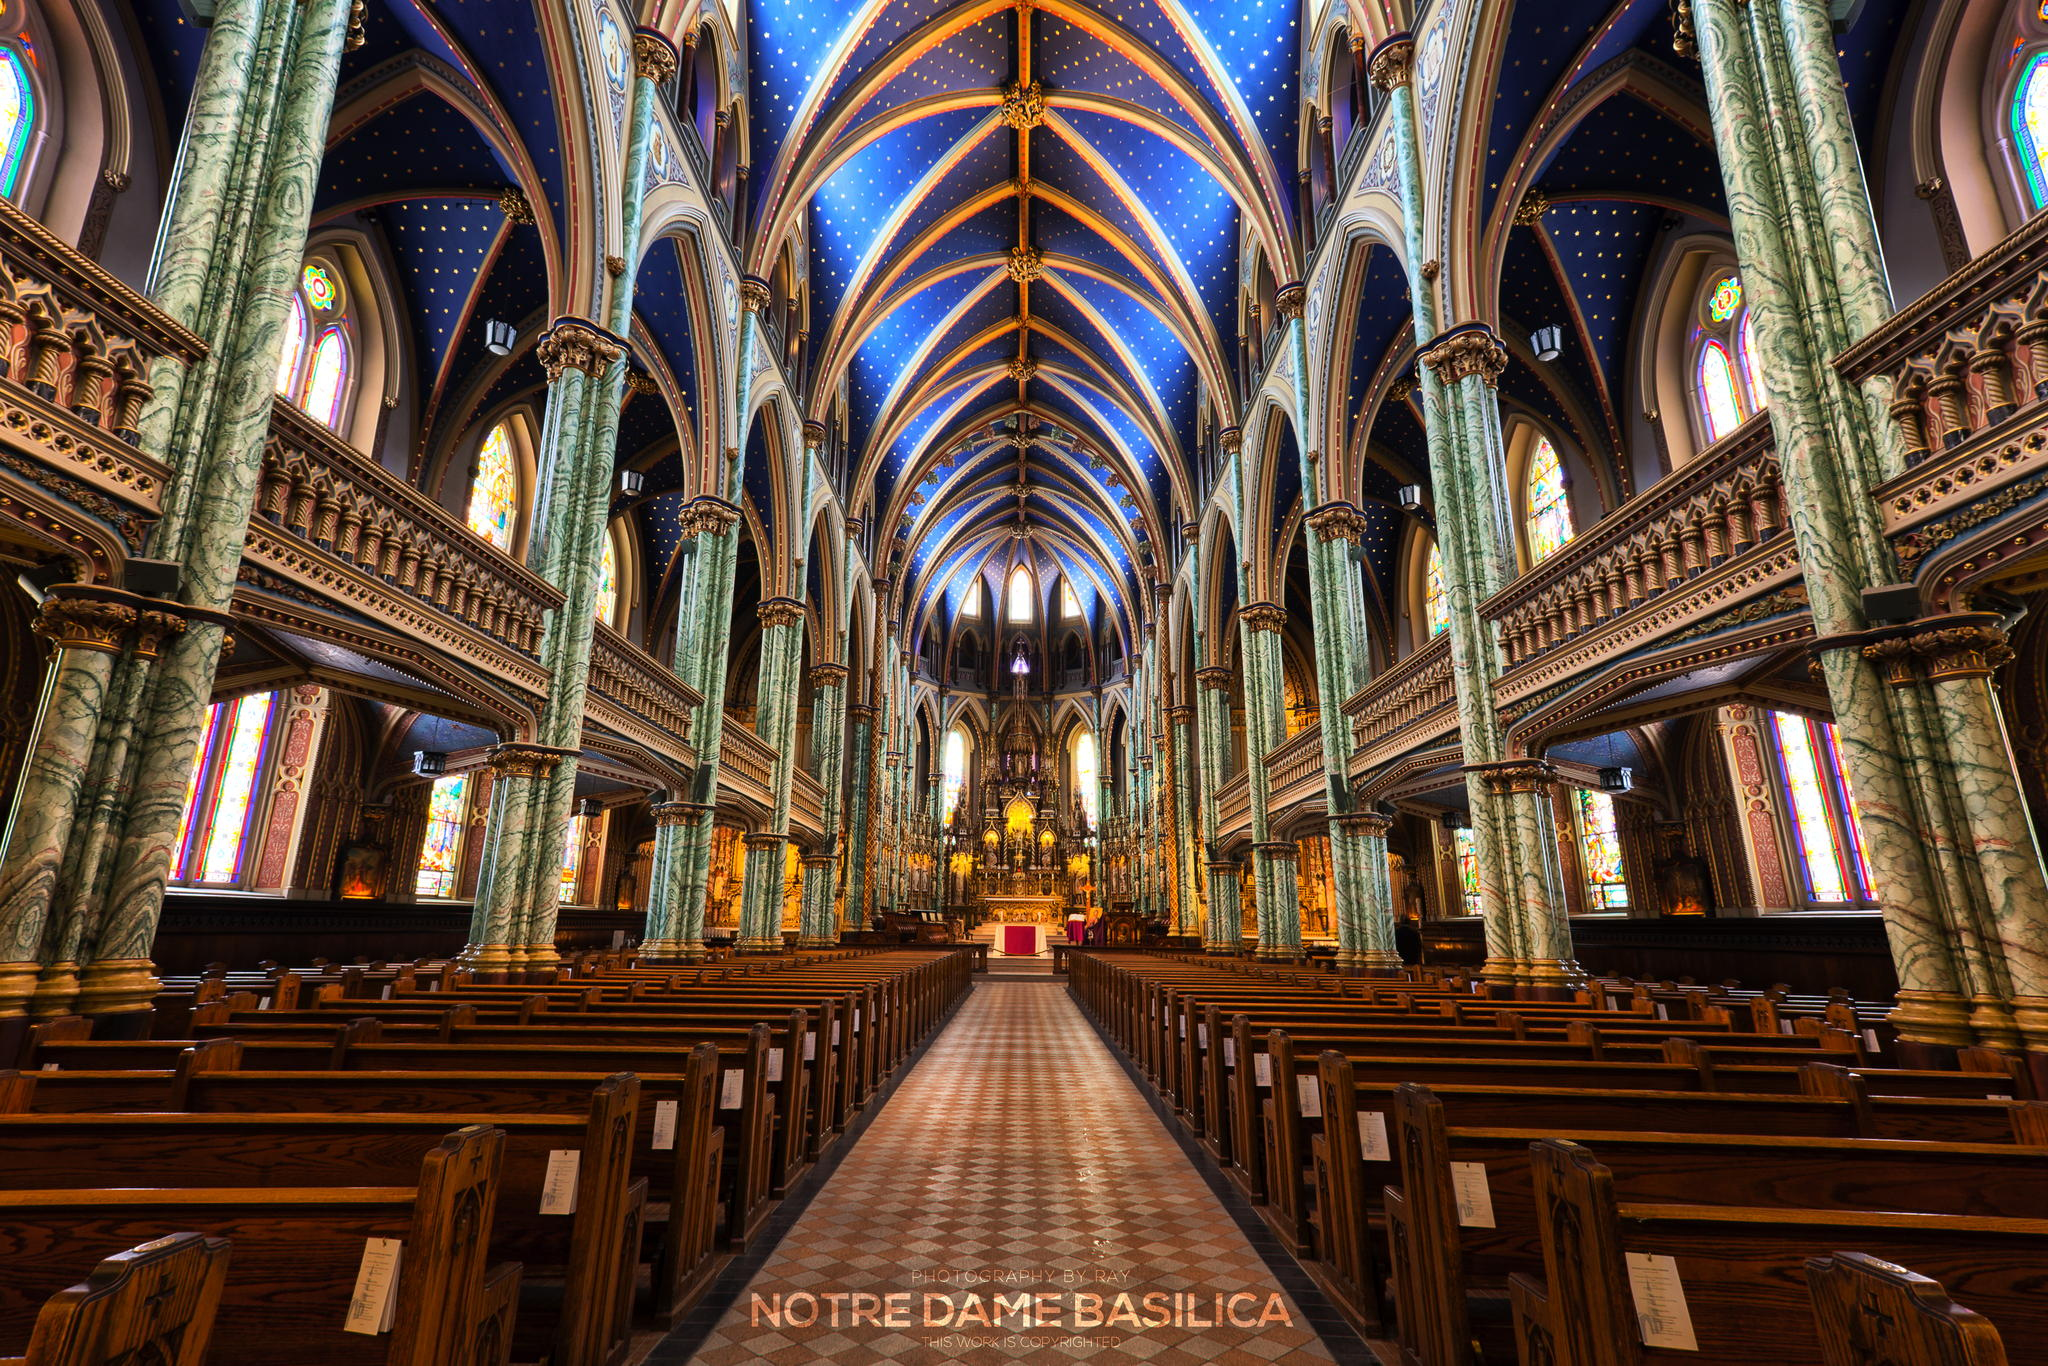 Photograph Notre Dame Basilica by Ray C on 500px